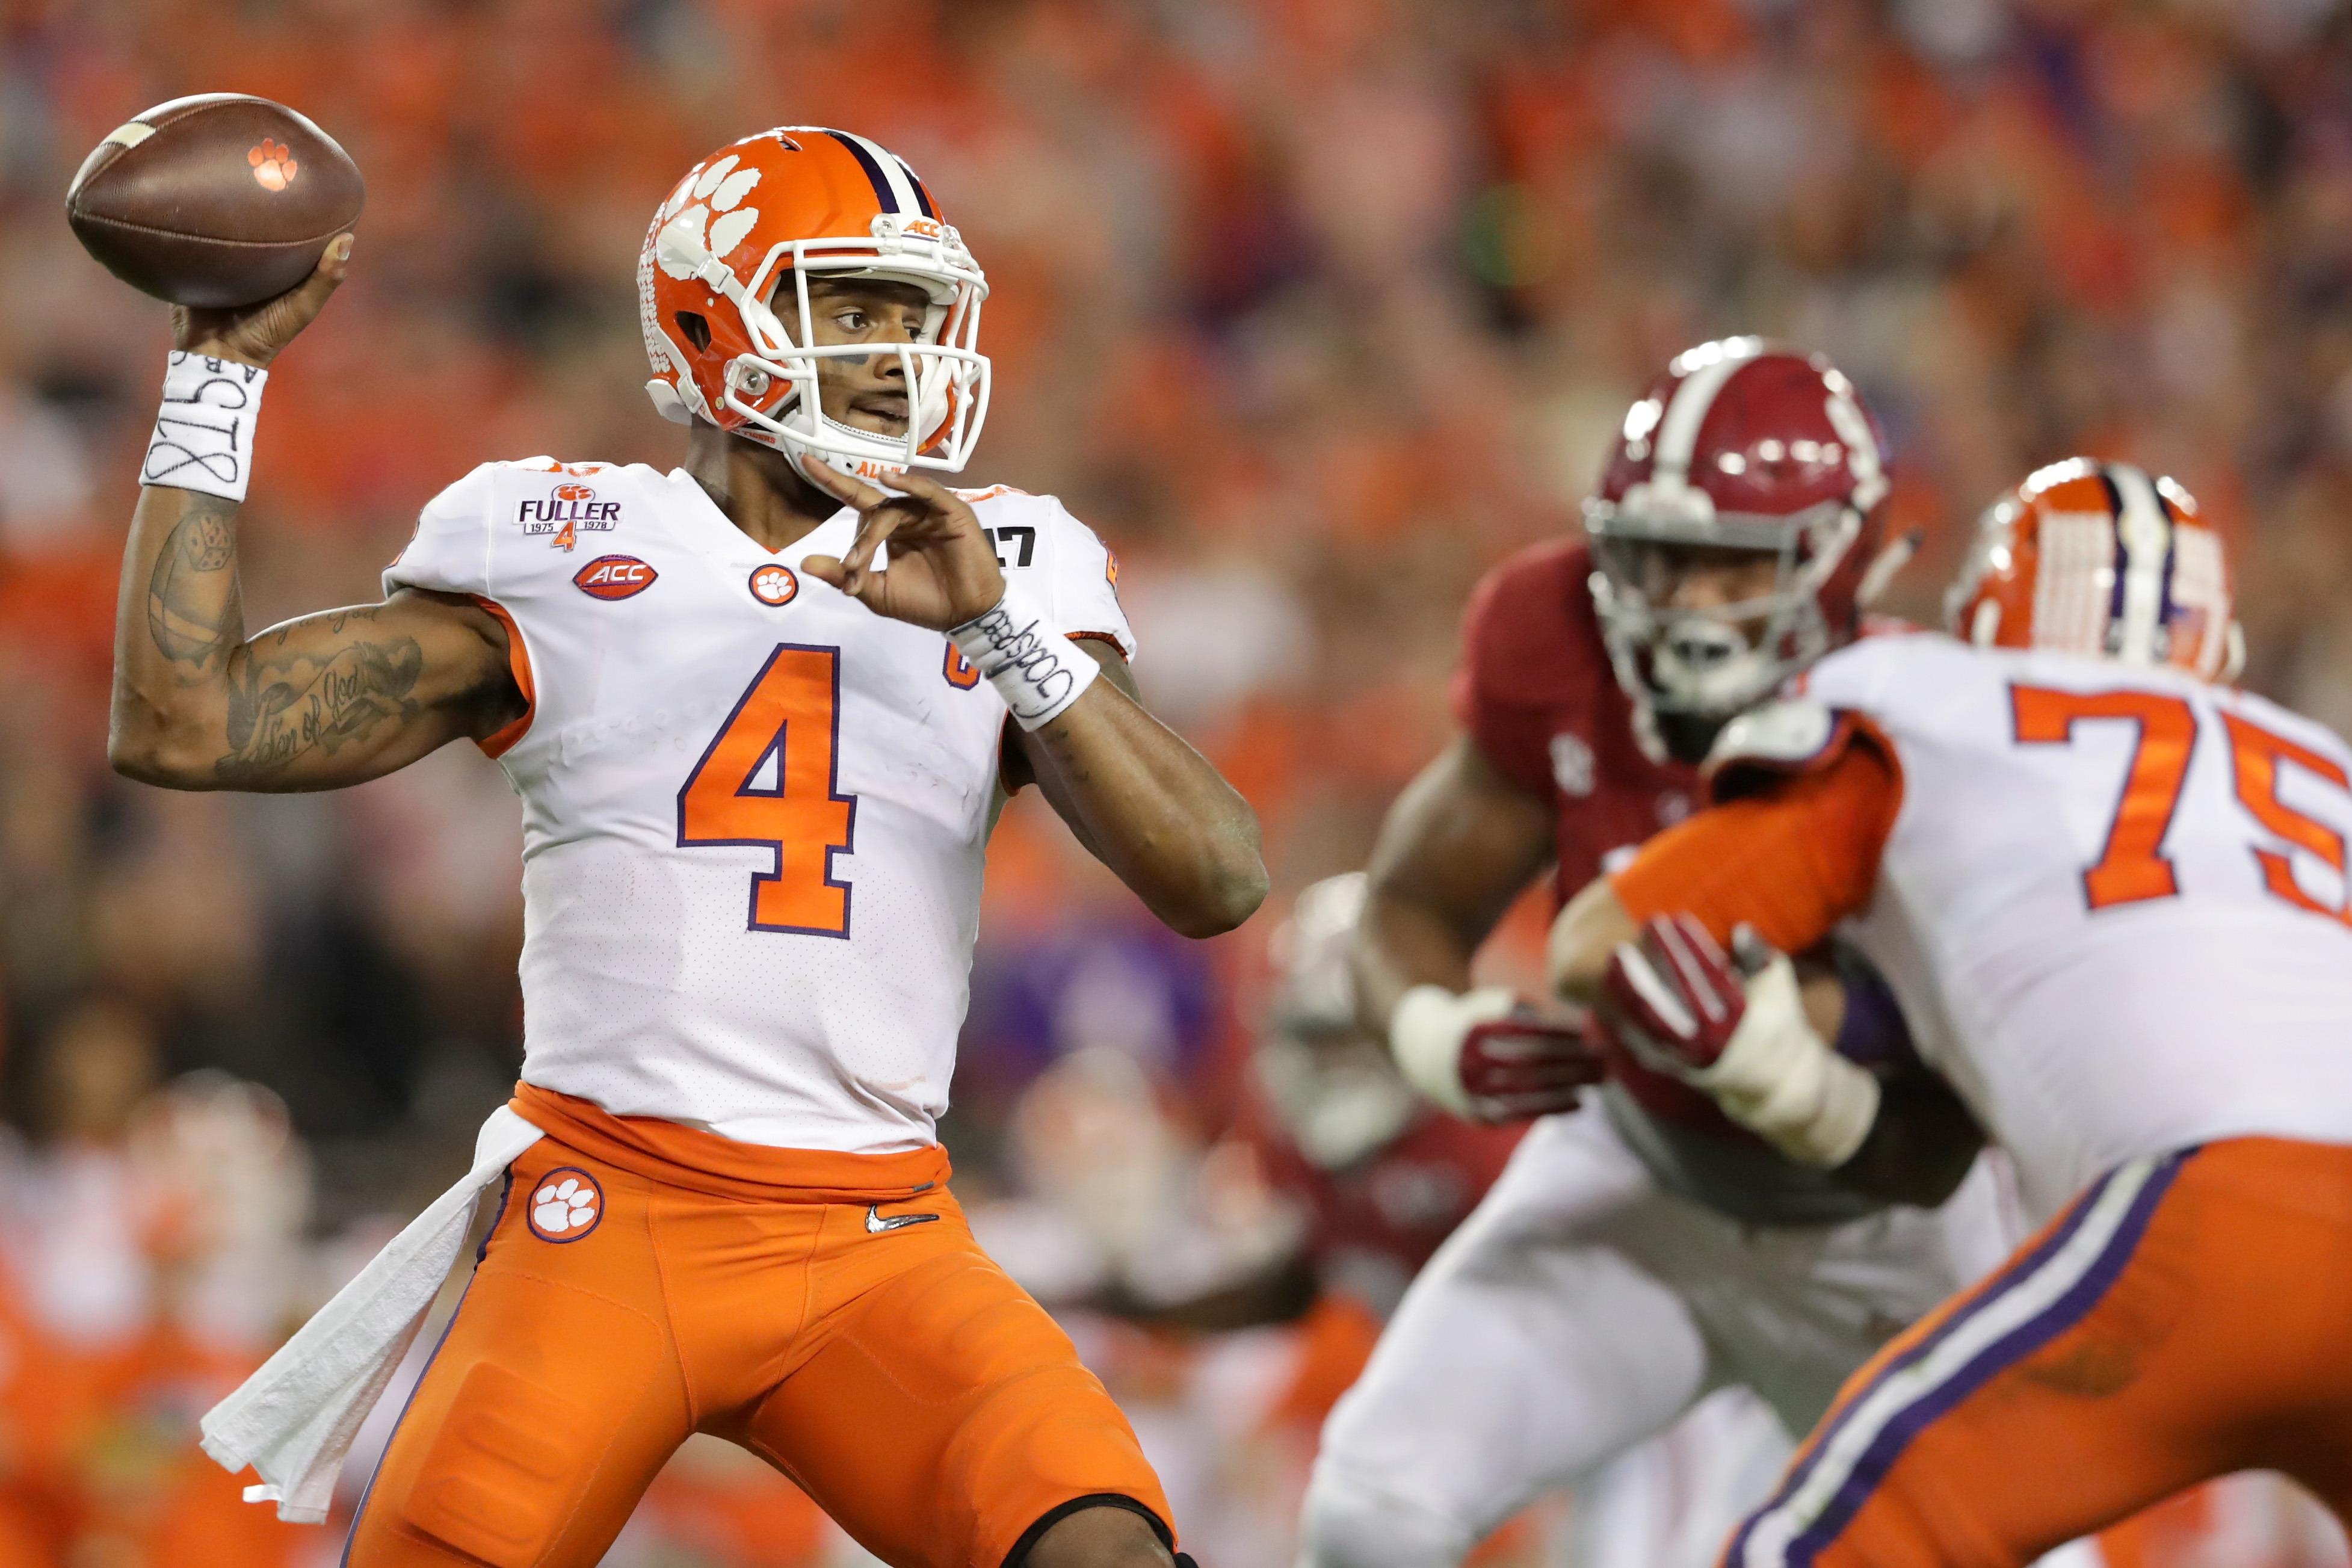 Clemson quarterback Deshaun Watson has made a leap up projected draft boards after beating Alabama in the national championship game. (Getty Images)